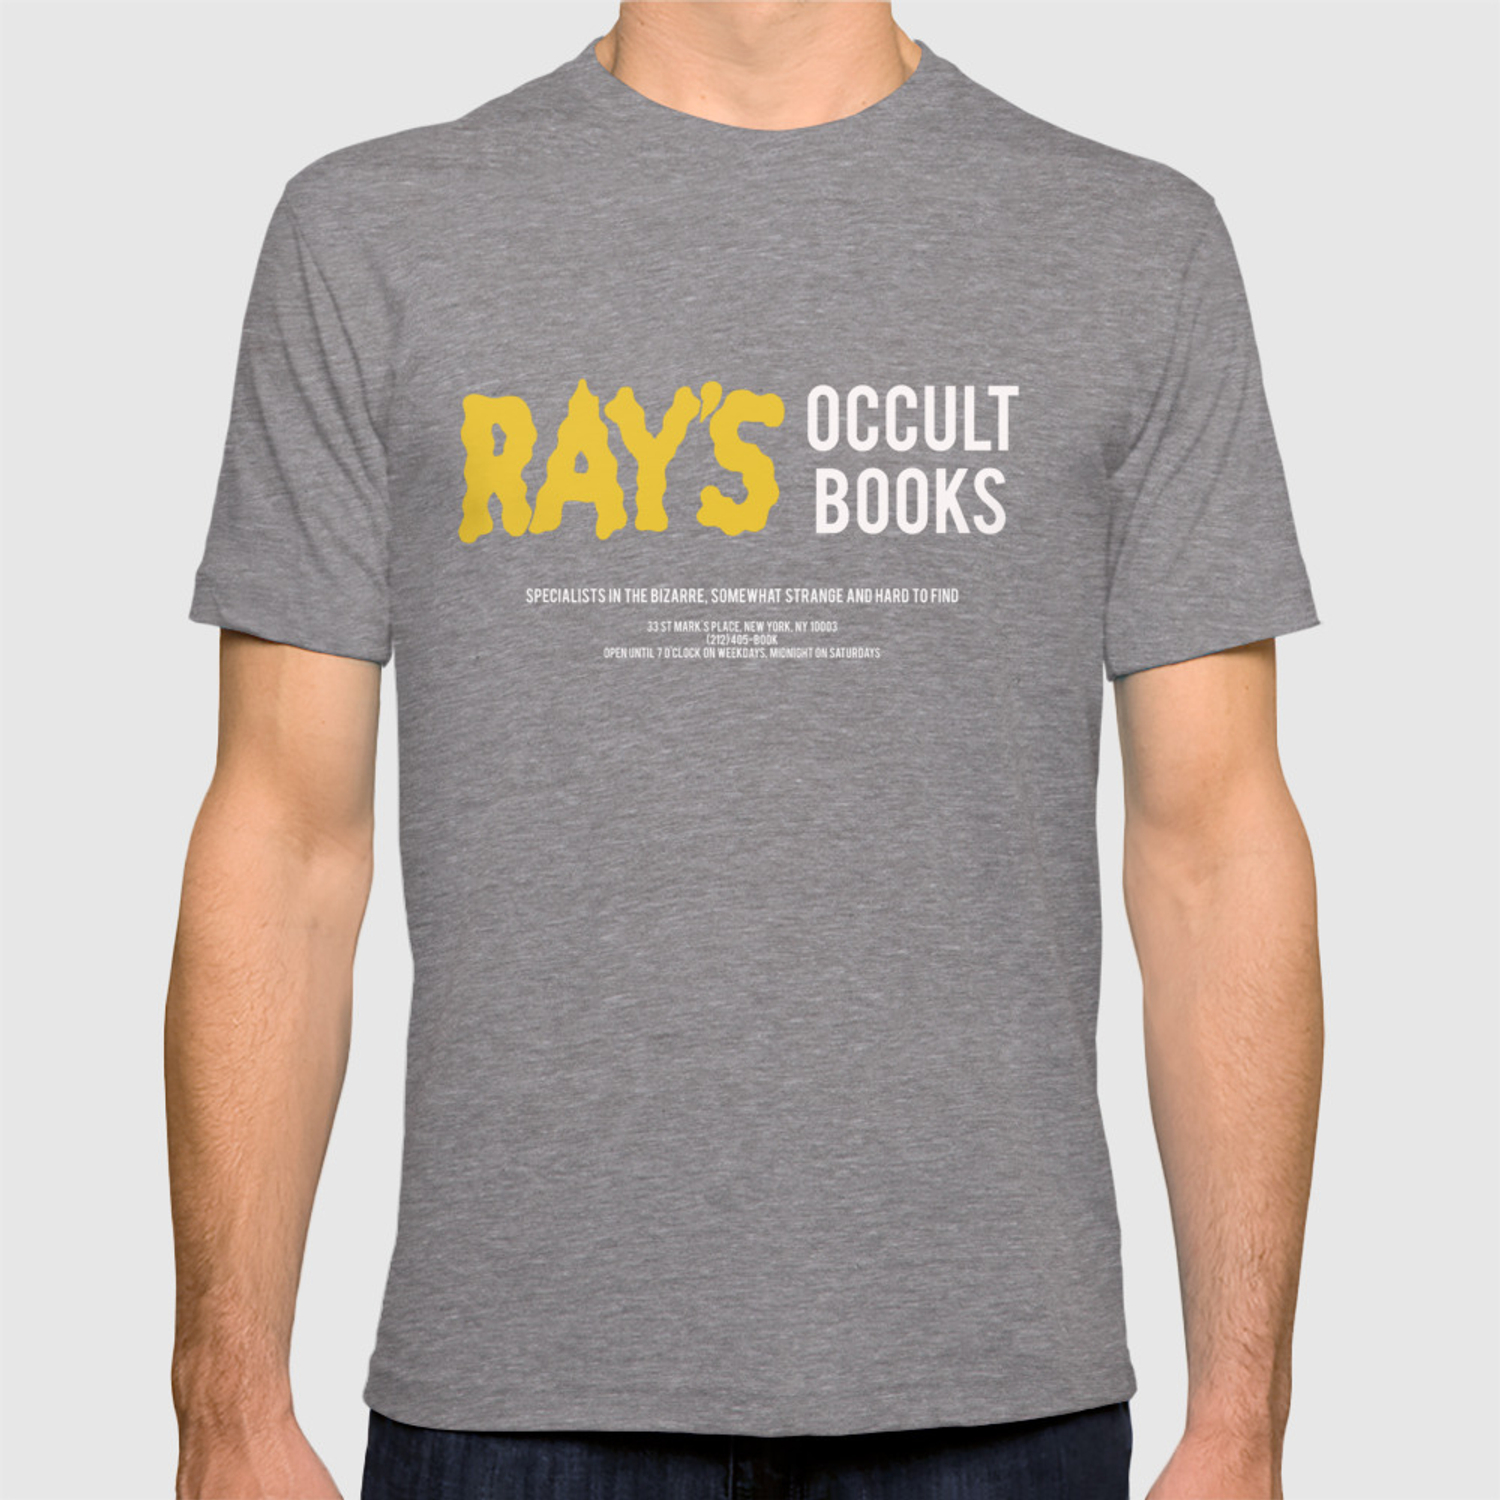 Ray's Occult Books Ghostbusters tribute T-shirt